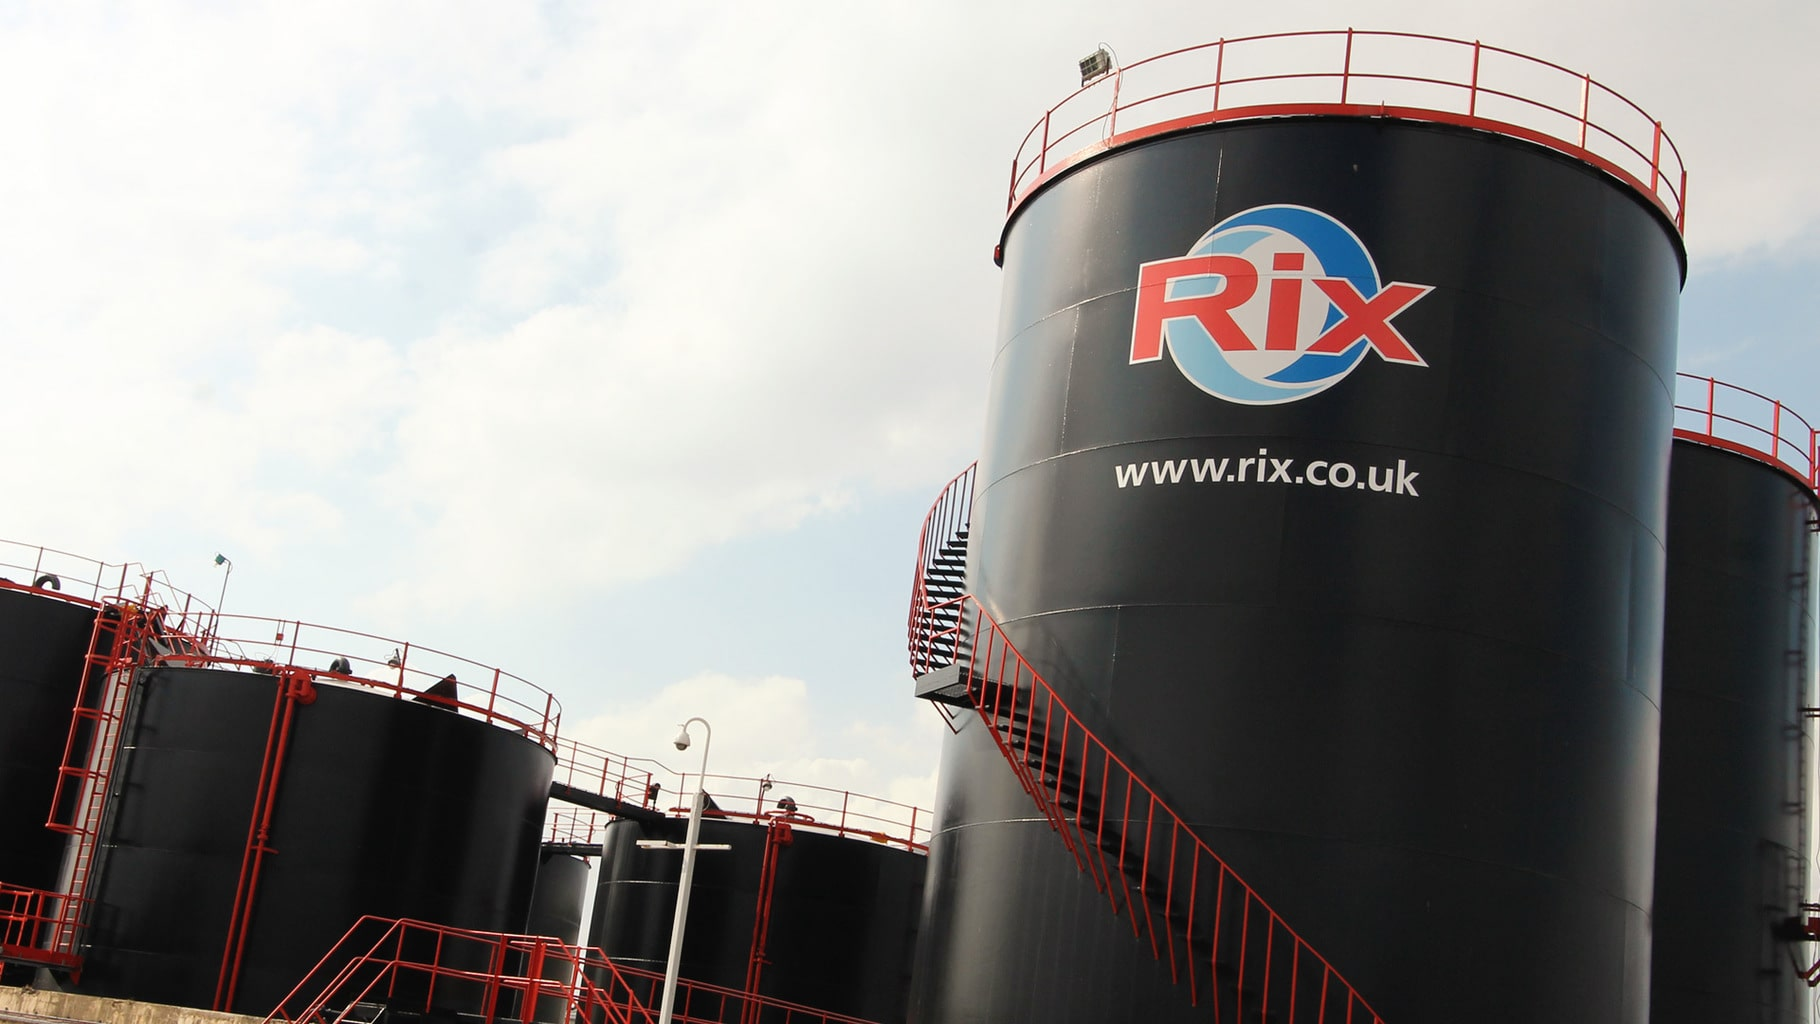 Rix Petroleum tanks at the Yorkshire depot